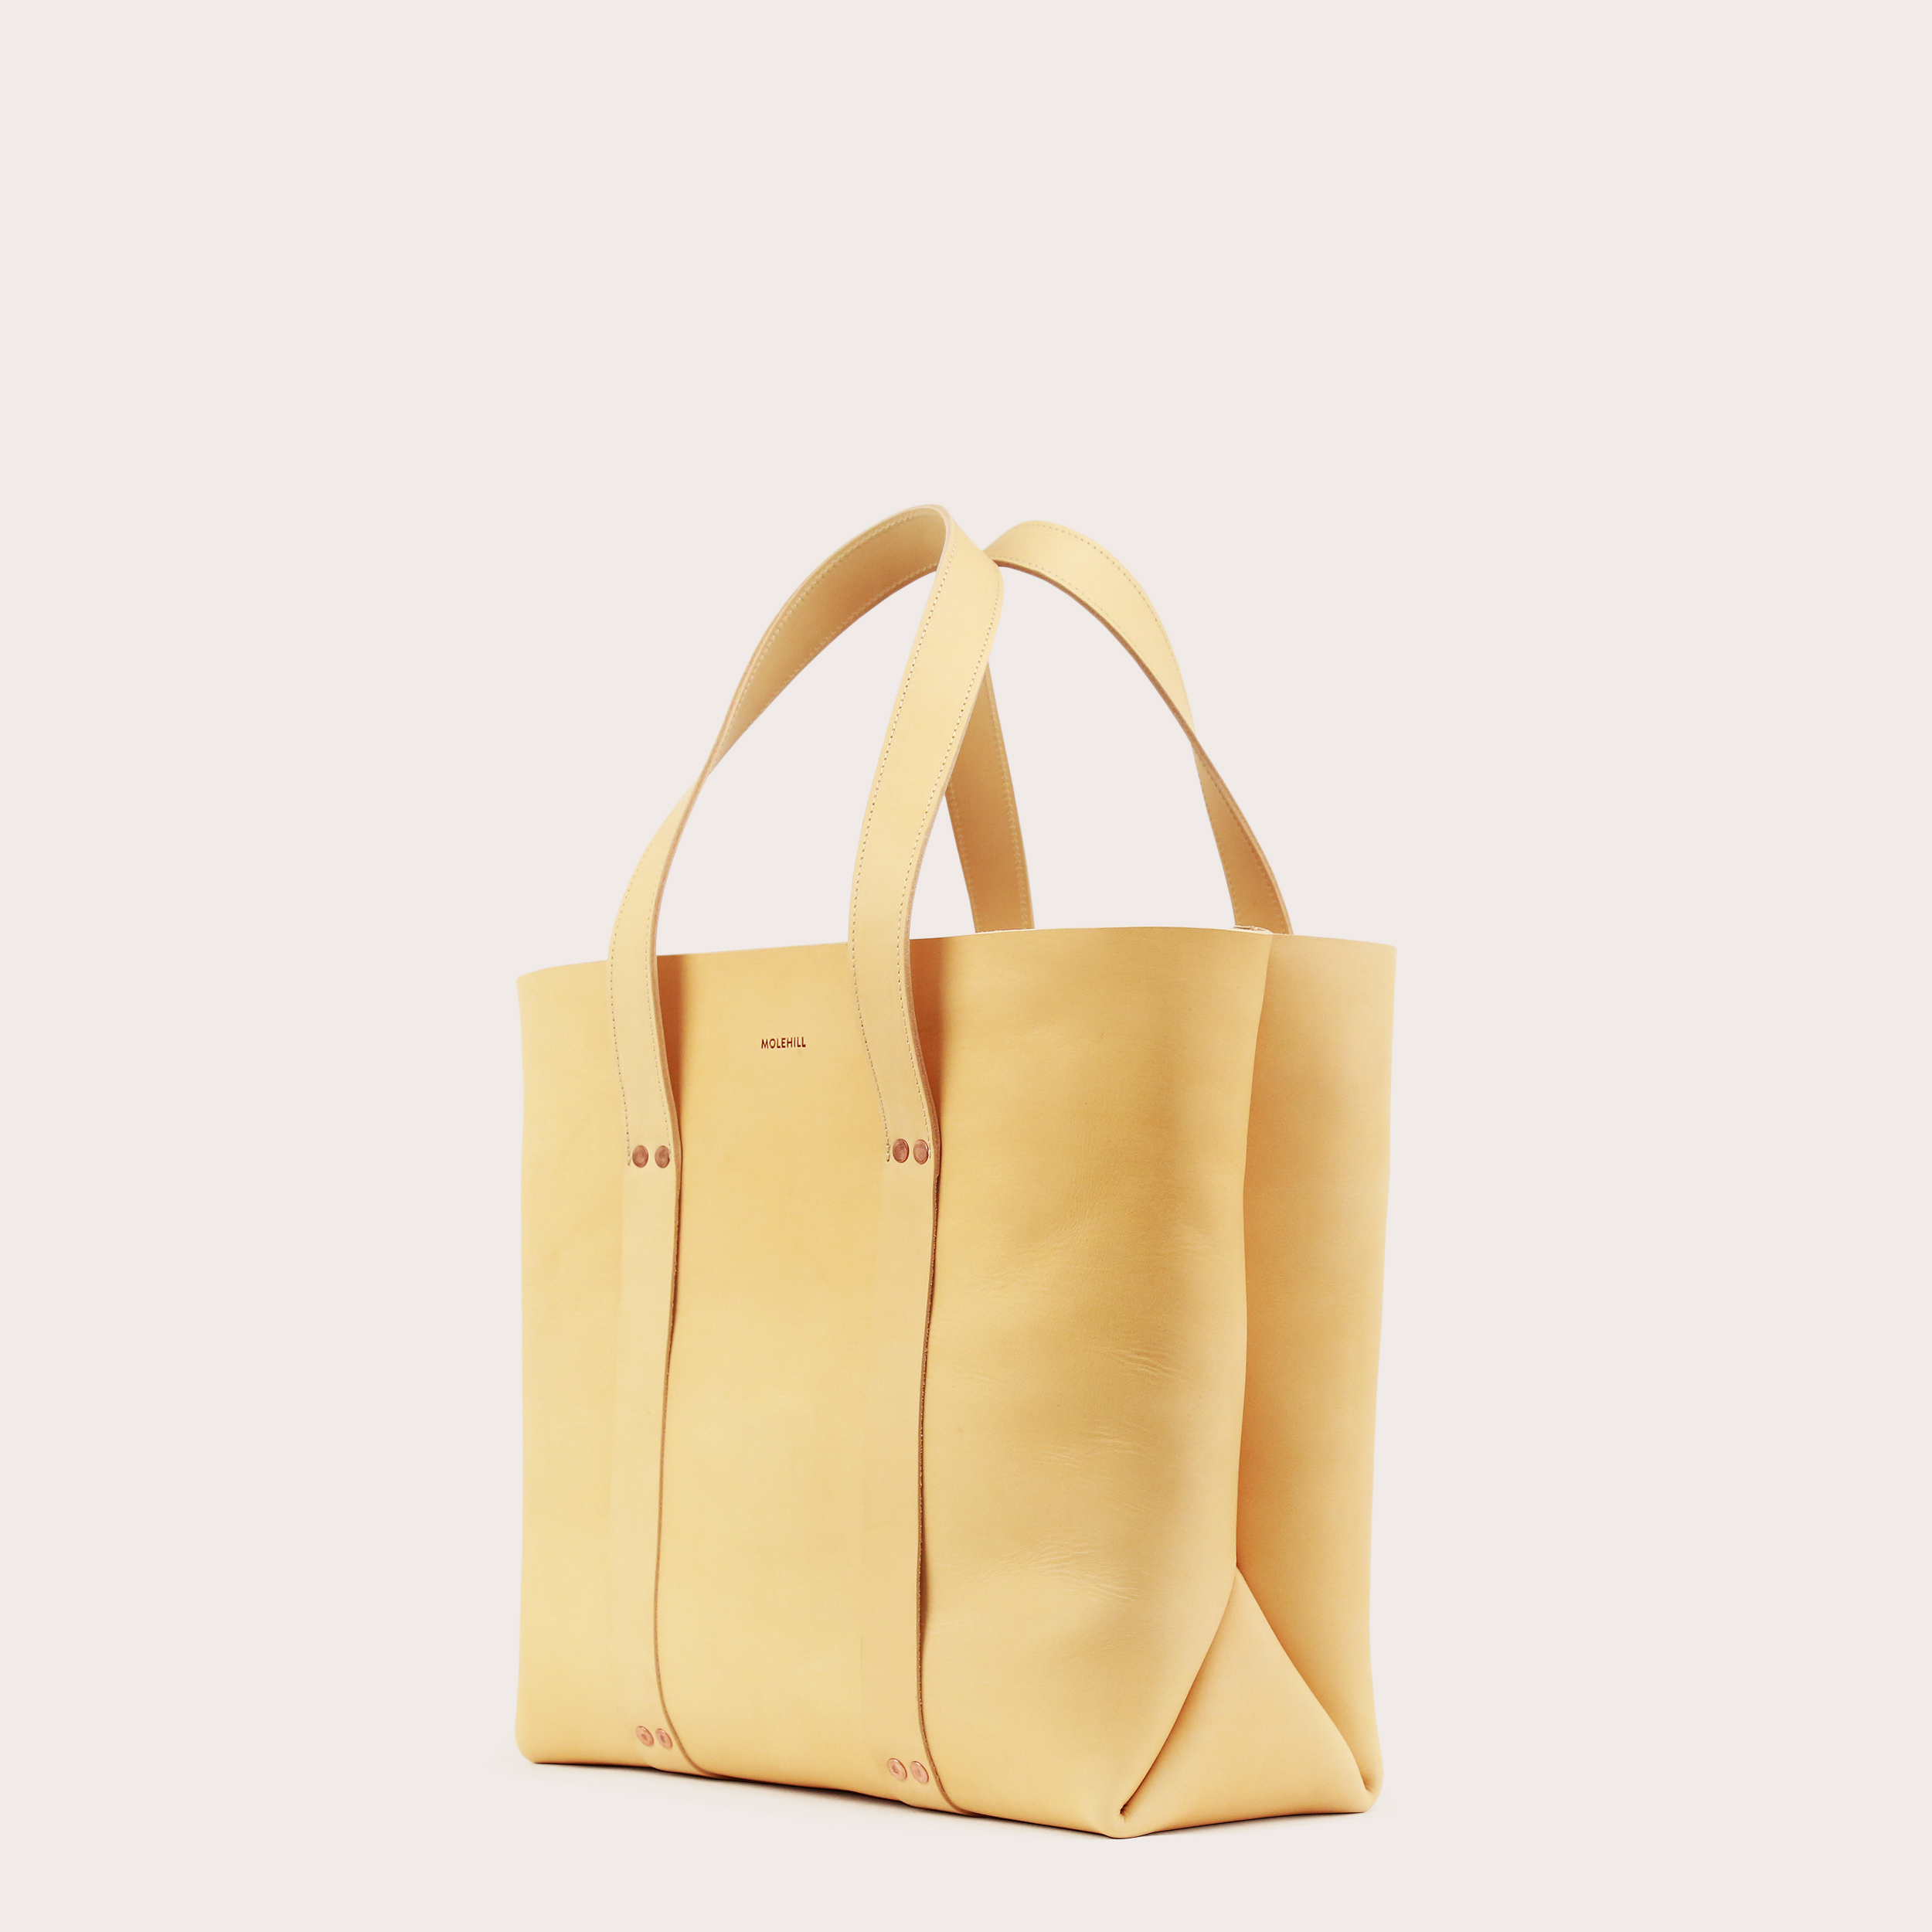 KRAFLA Shopper Natural-2